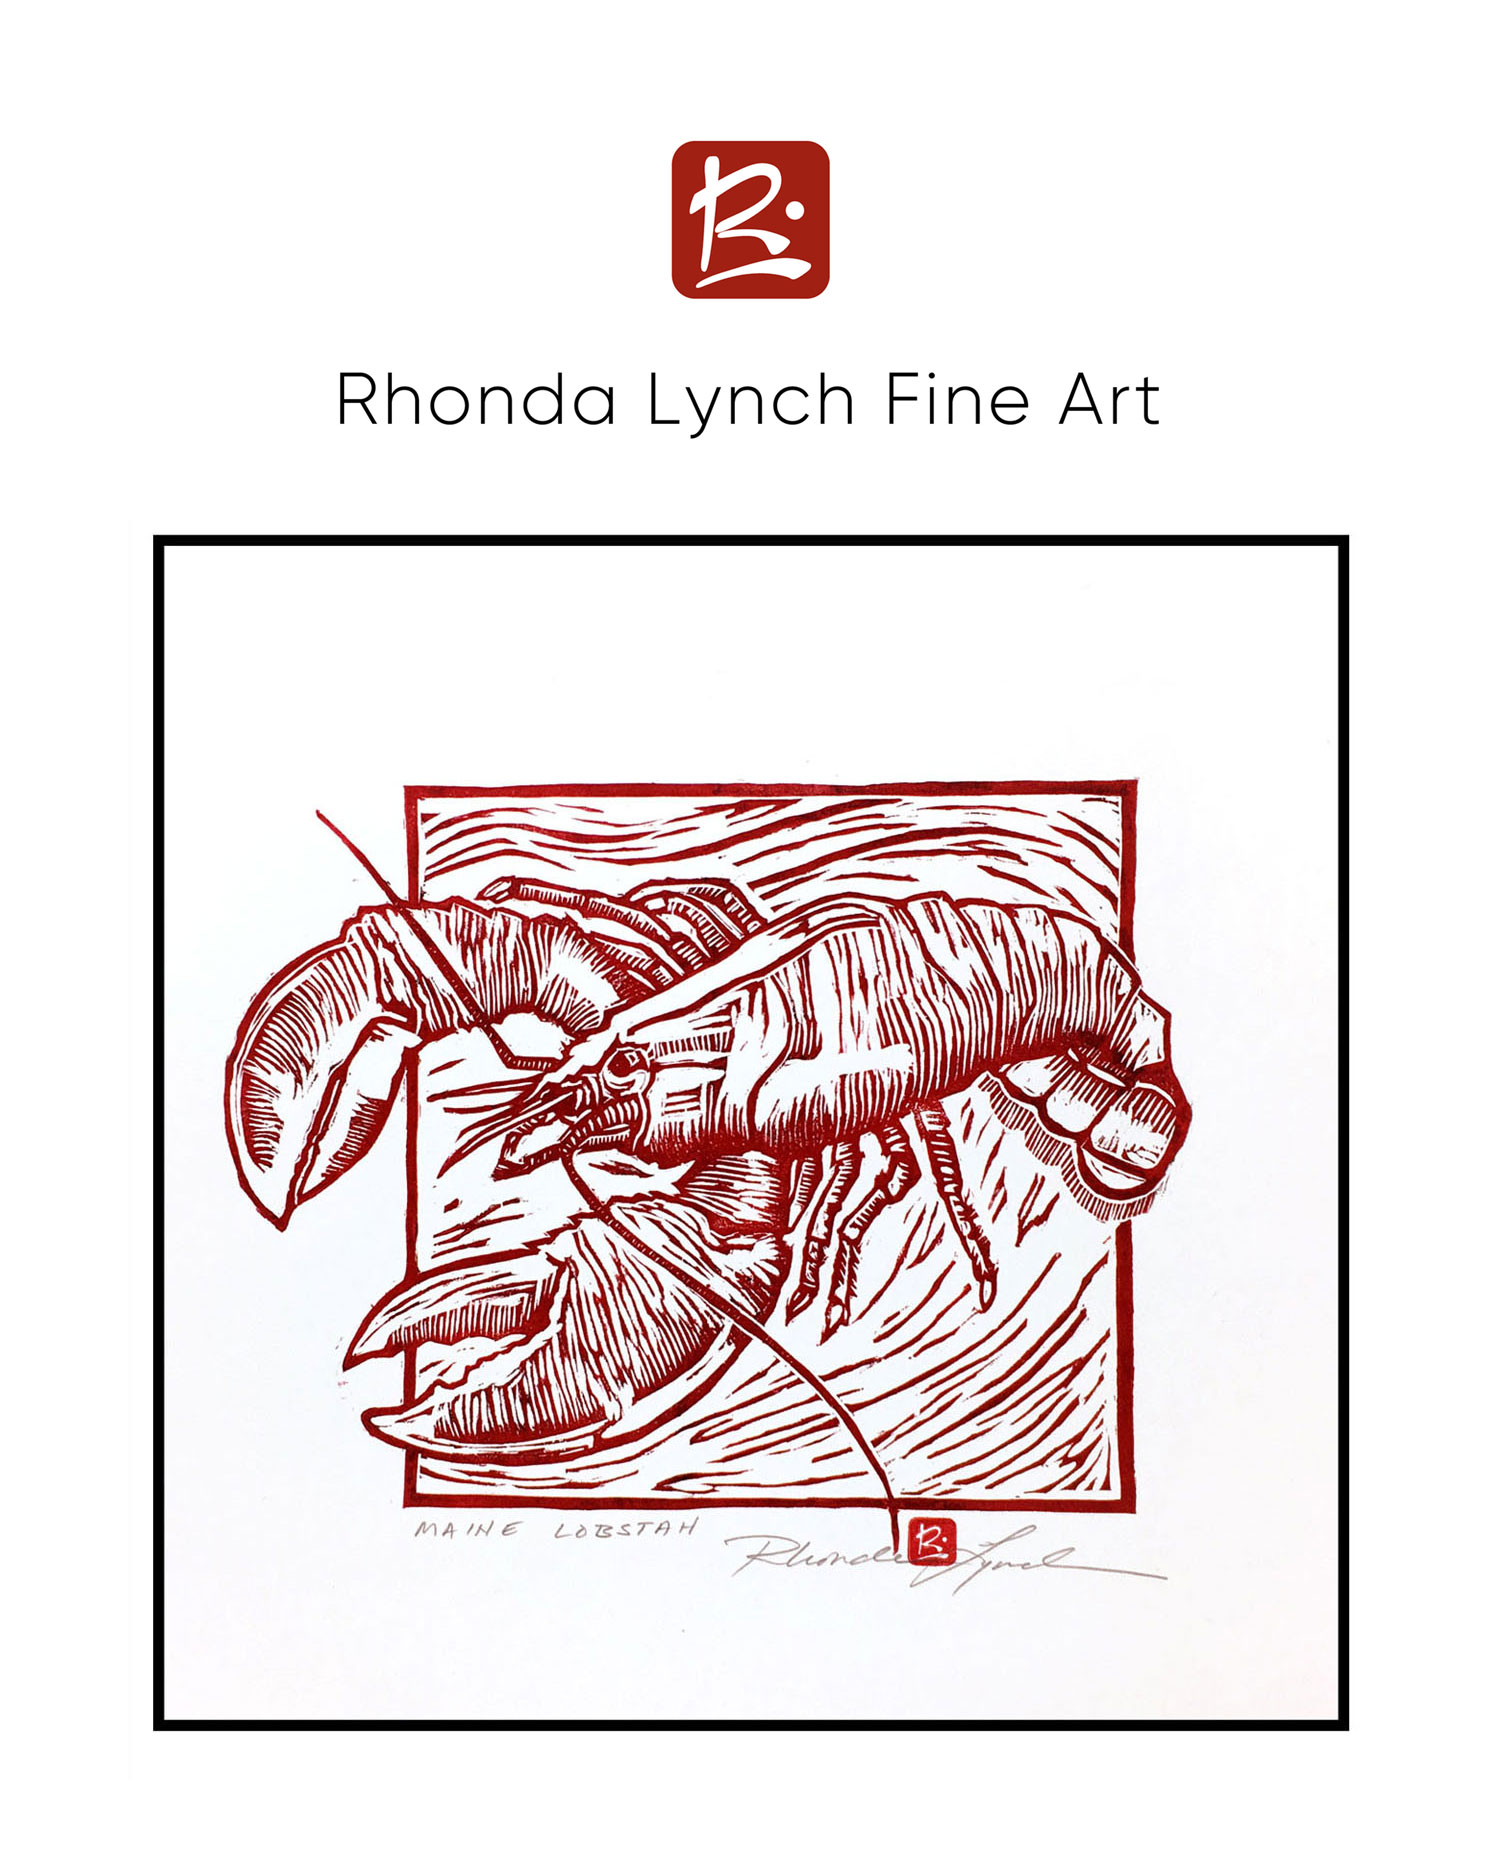 Rhonda Lynch Fine Art